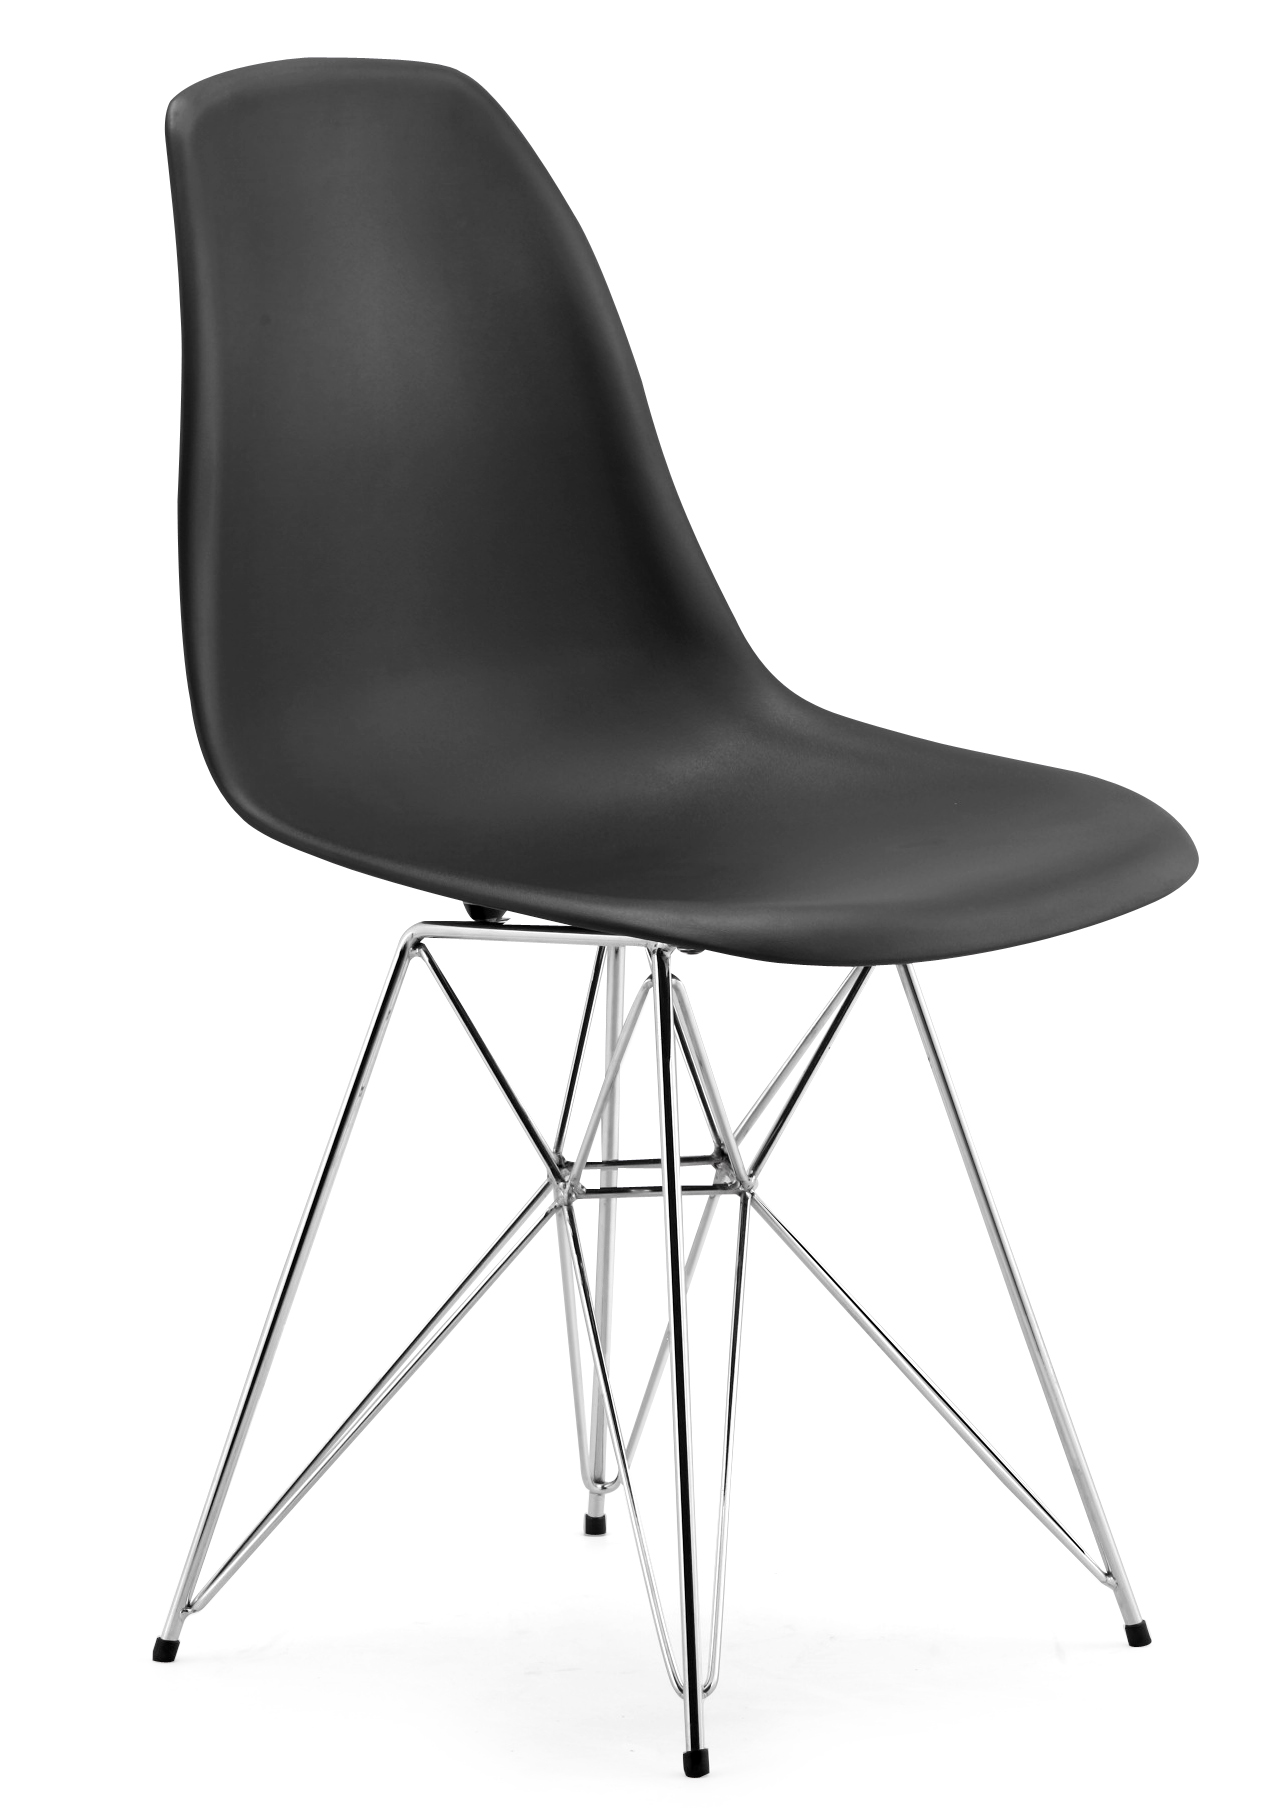 black kitchen chairs kitchen chairs zuo modern spire dining chair dining chair 0 0